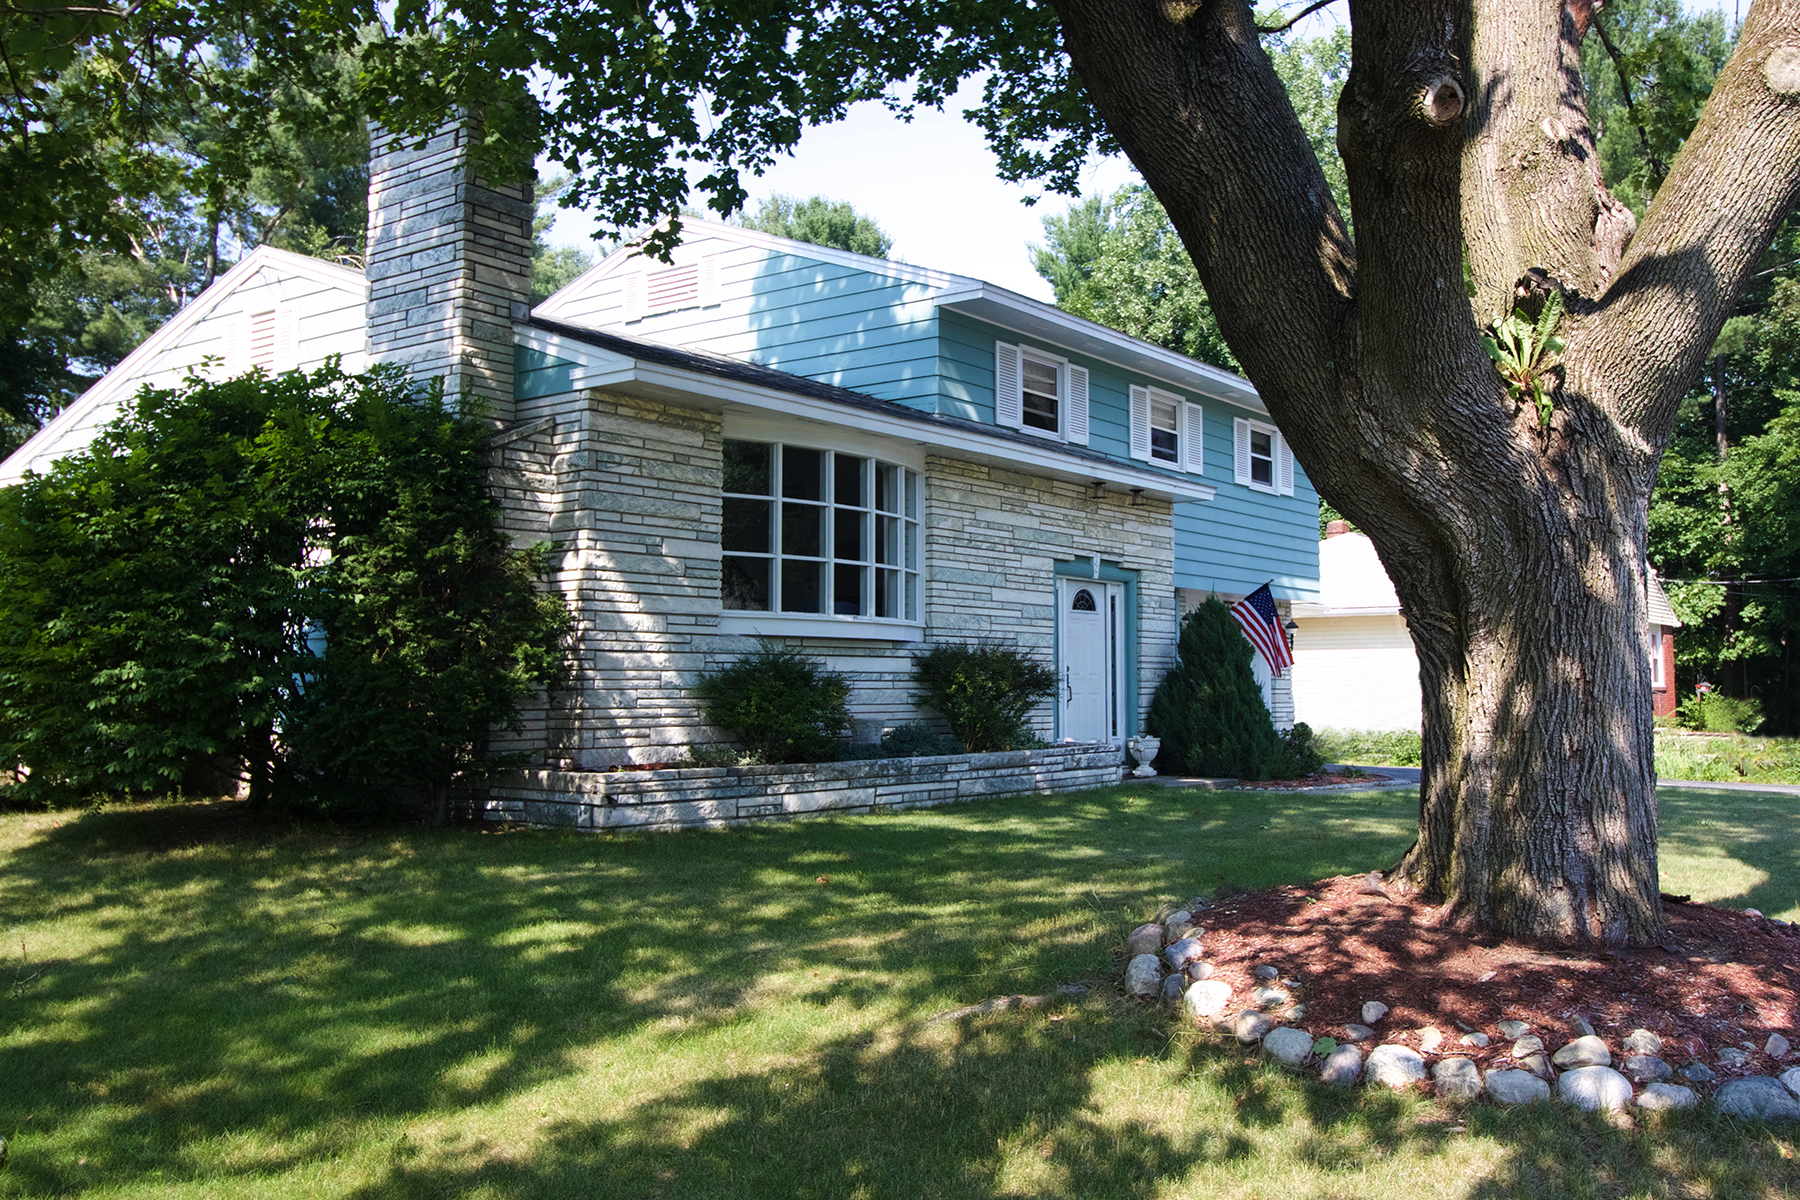 独户住宅 为 销售 在 Gorgeous Split Level Ranch 9 Leland St South Glens Falls, 12803 美国